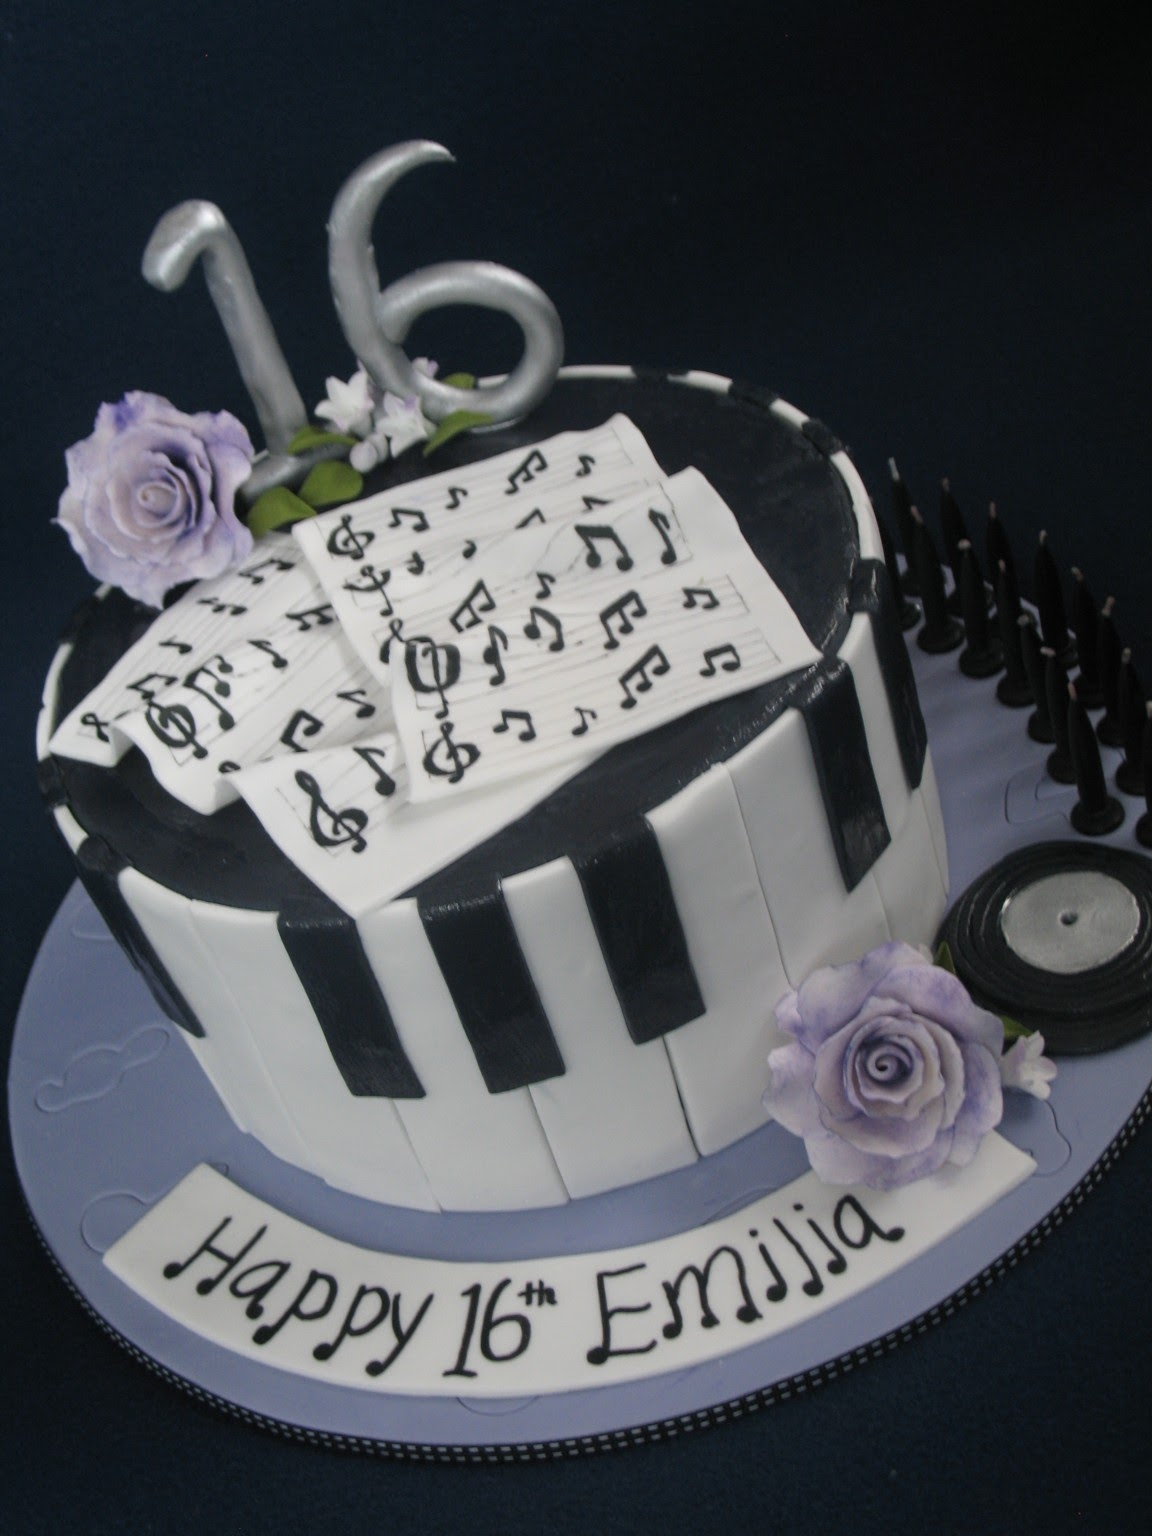 An Elegant Musical 16th Birthday Cake